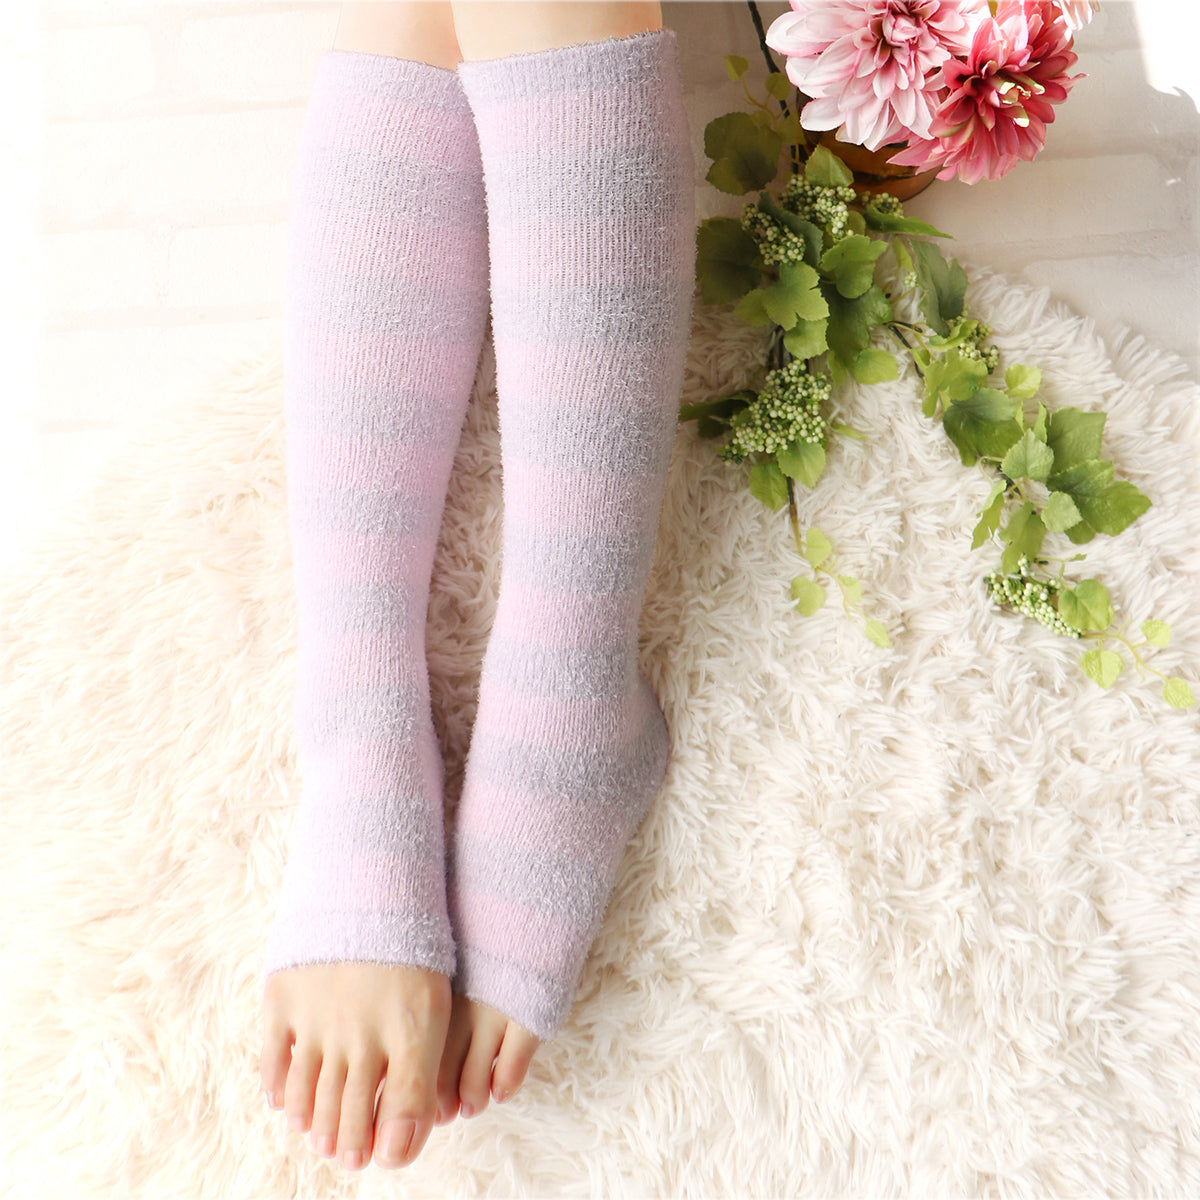 Refreshing Toeless Compression Socks | Knee-high | Lavender - CHERRYSTONE